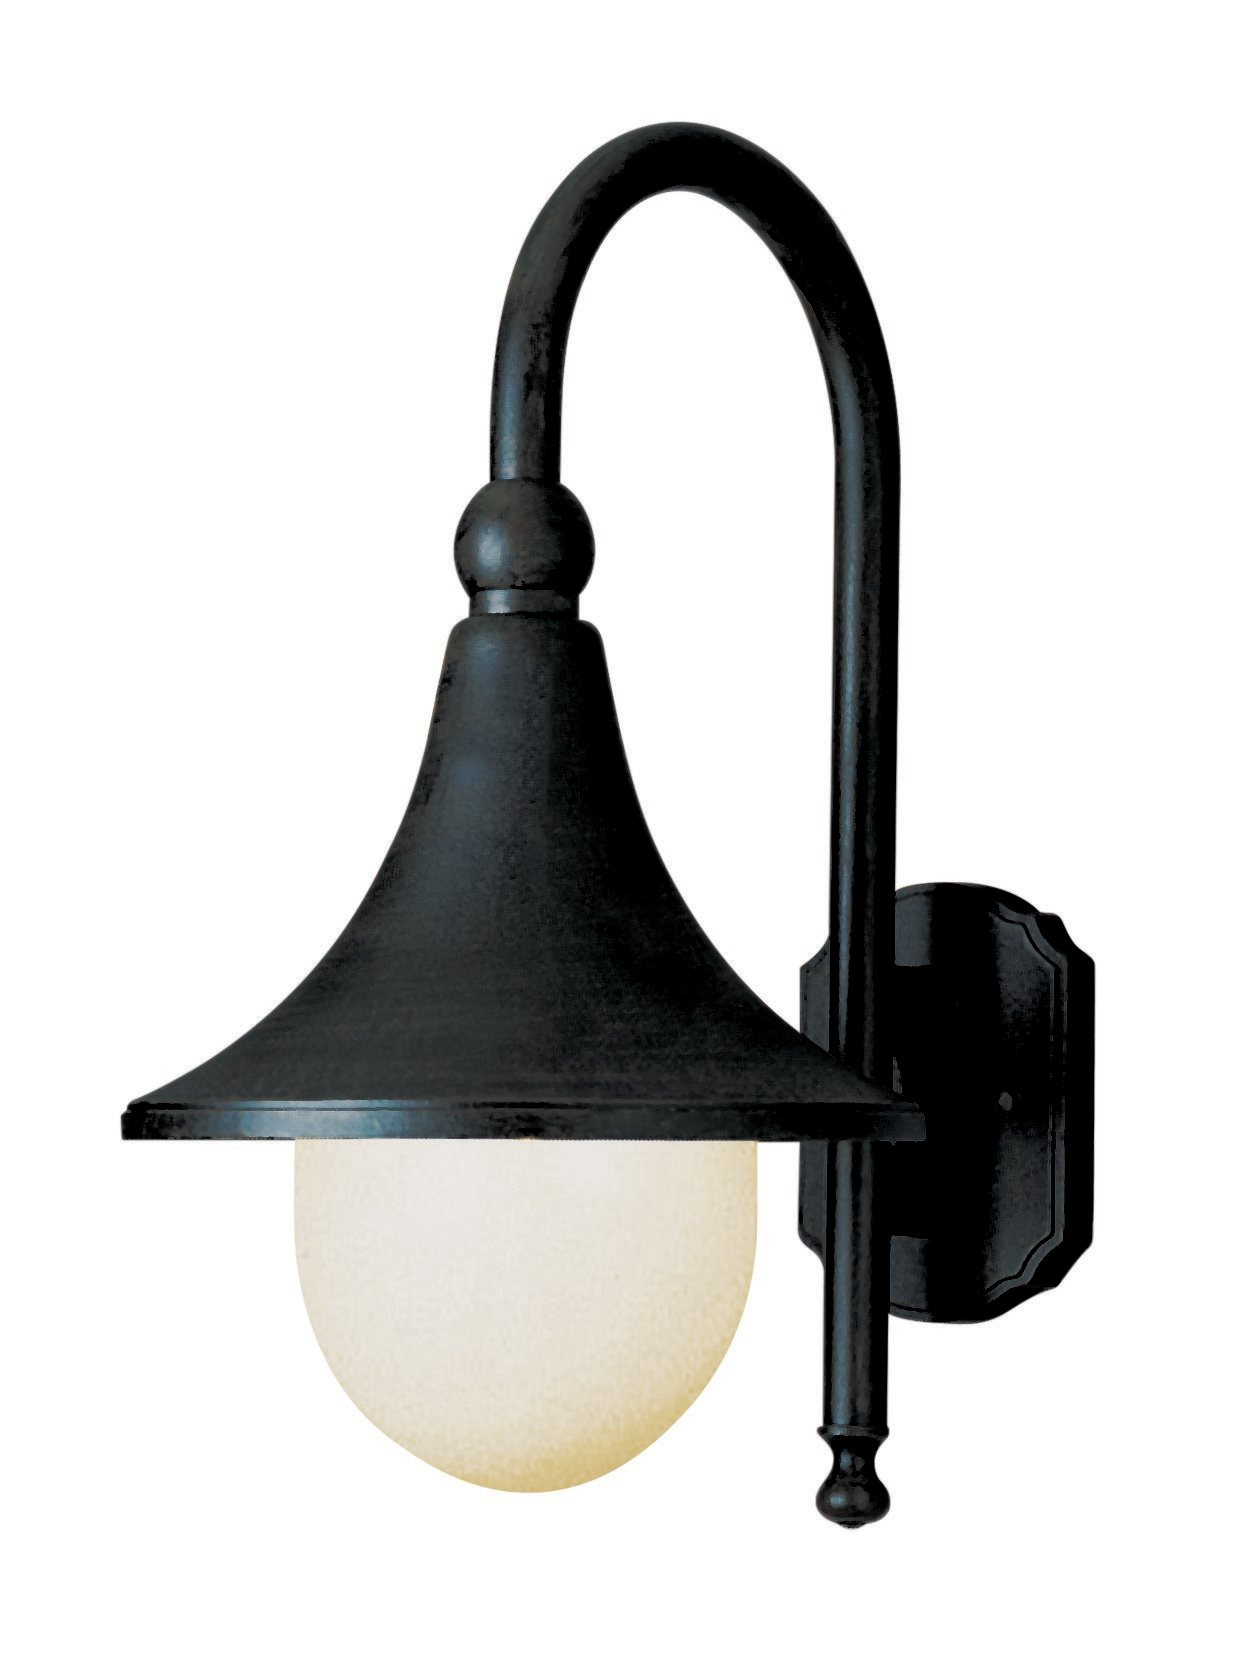 Trans globe lighting 4775 transitional outdoor wall sconce for Outdoor sconce lighting fixtures